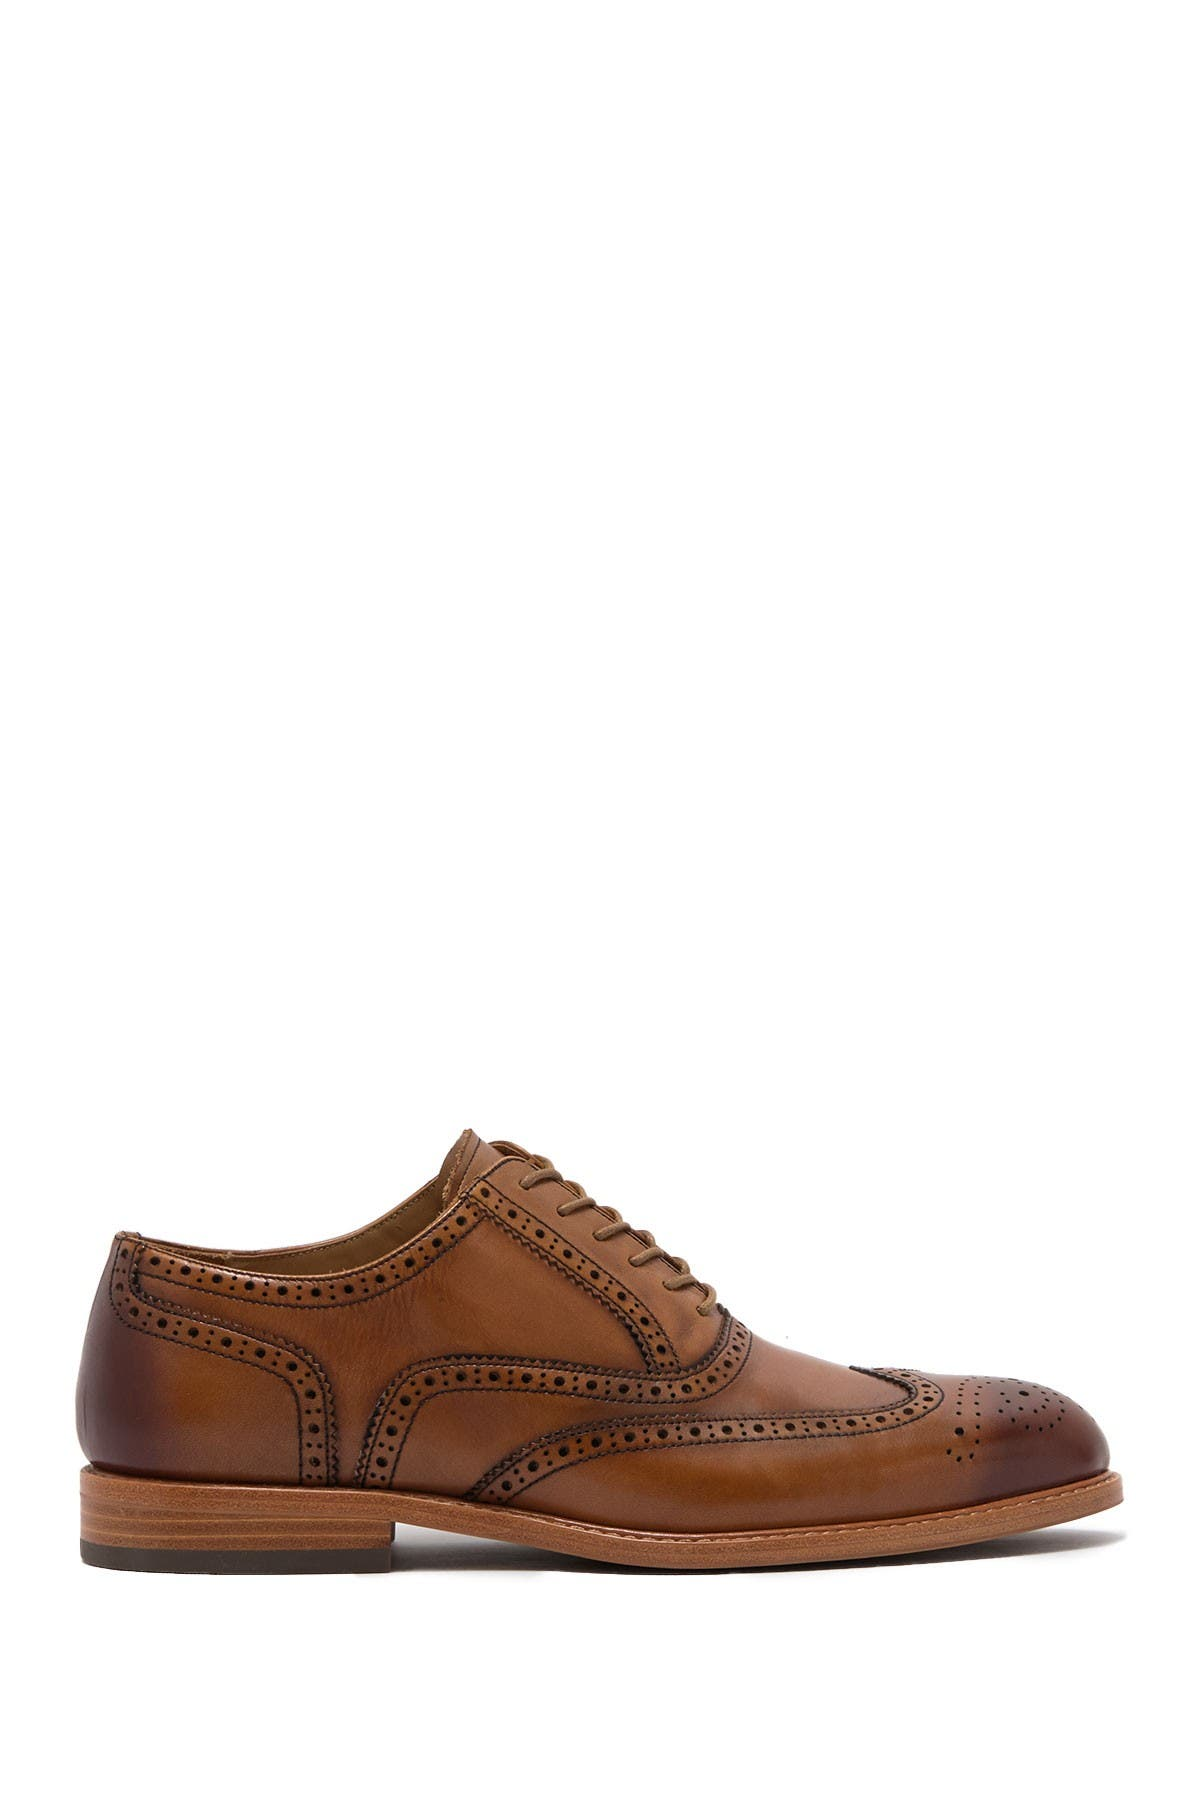 Warfield & Grand Myer Wingtip Brogued Leather Oxford